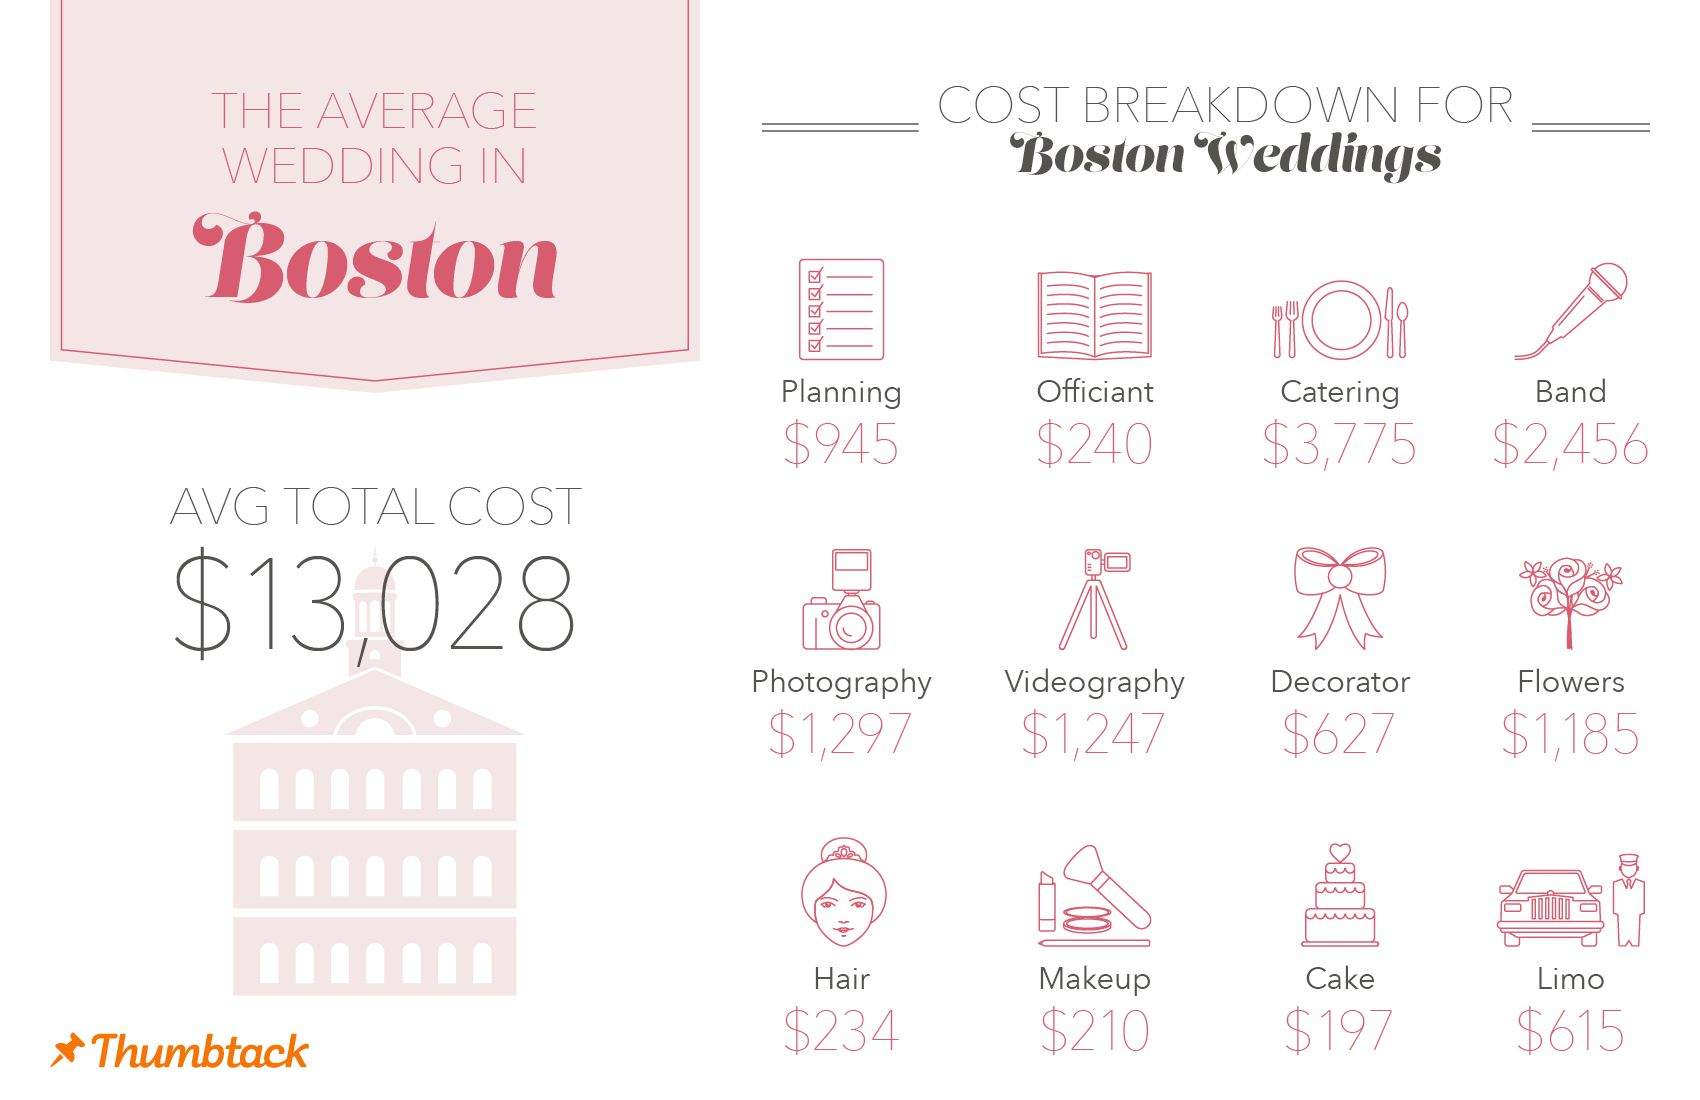 Average Wedding Cost Breakdown.Wedding Costs How Does Boston Stack Up To Other Cities The